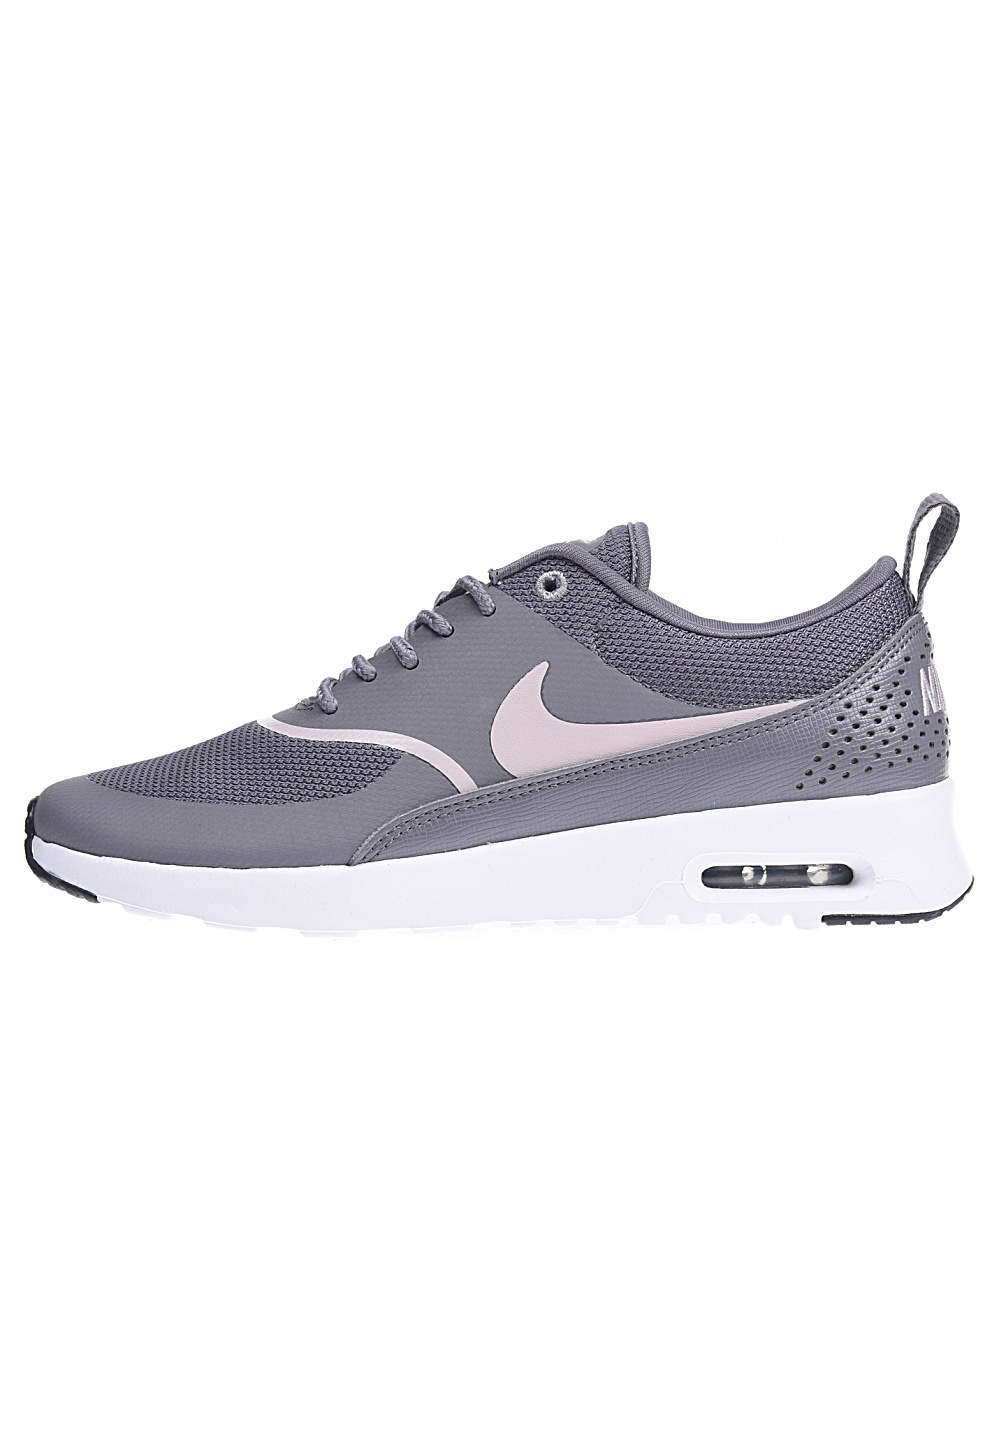 a0aac29eec7 NIKE SPORTSWEAR Air Max Thea - Sneakers voor Dames - Grijs - Planet Sports